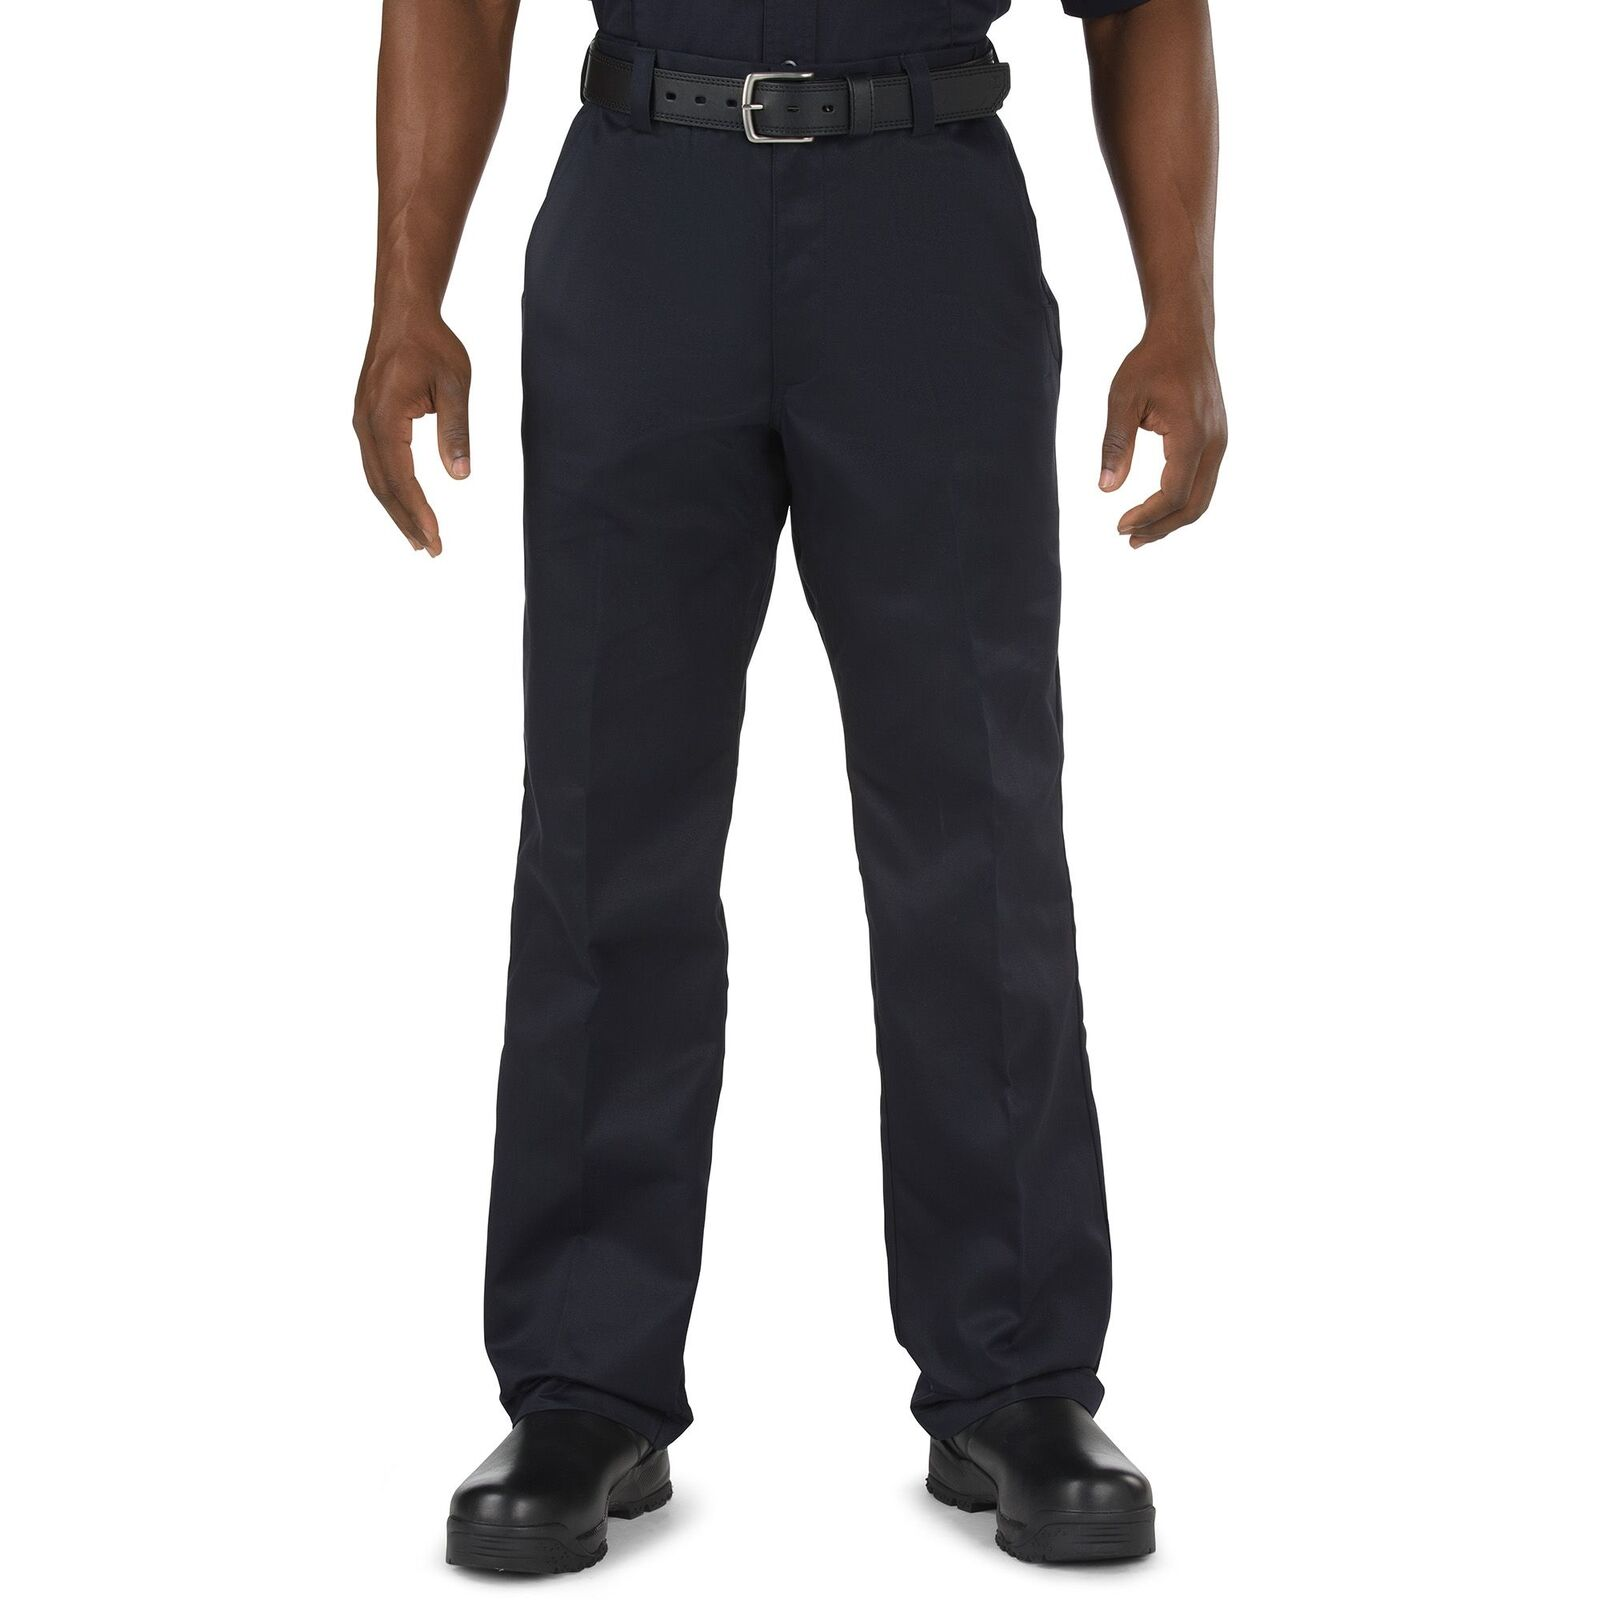 5.11 Tactical Company Pants, Fire Navy, Style 74398, Waist 32-40, Inseam 30-36